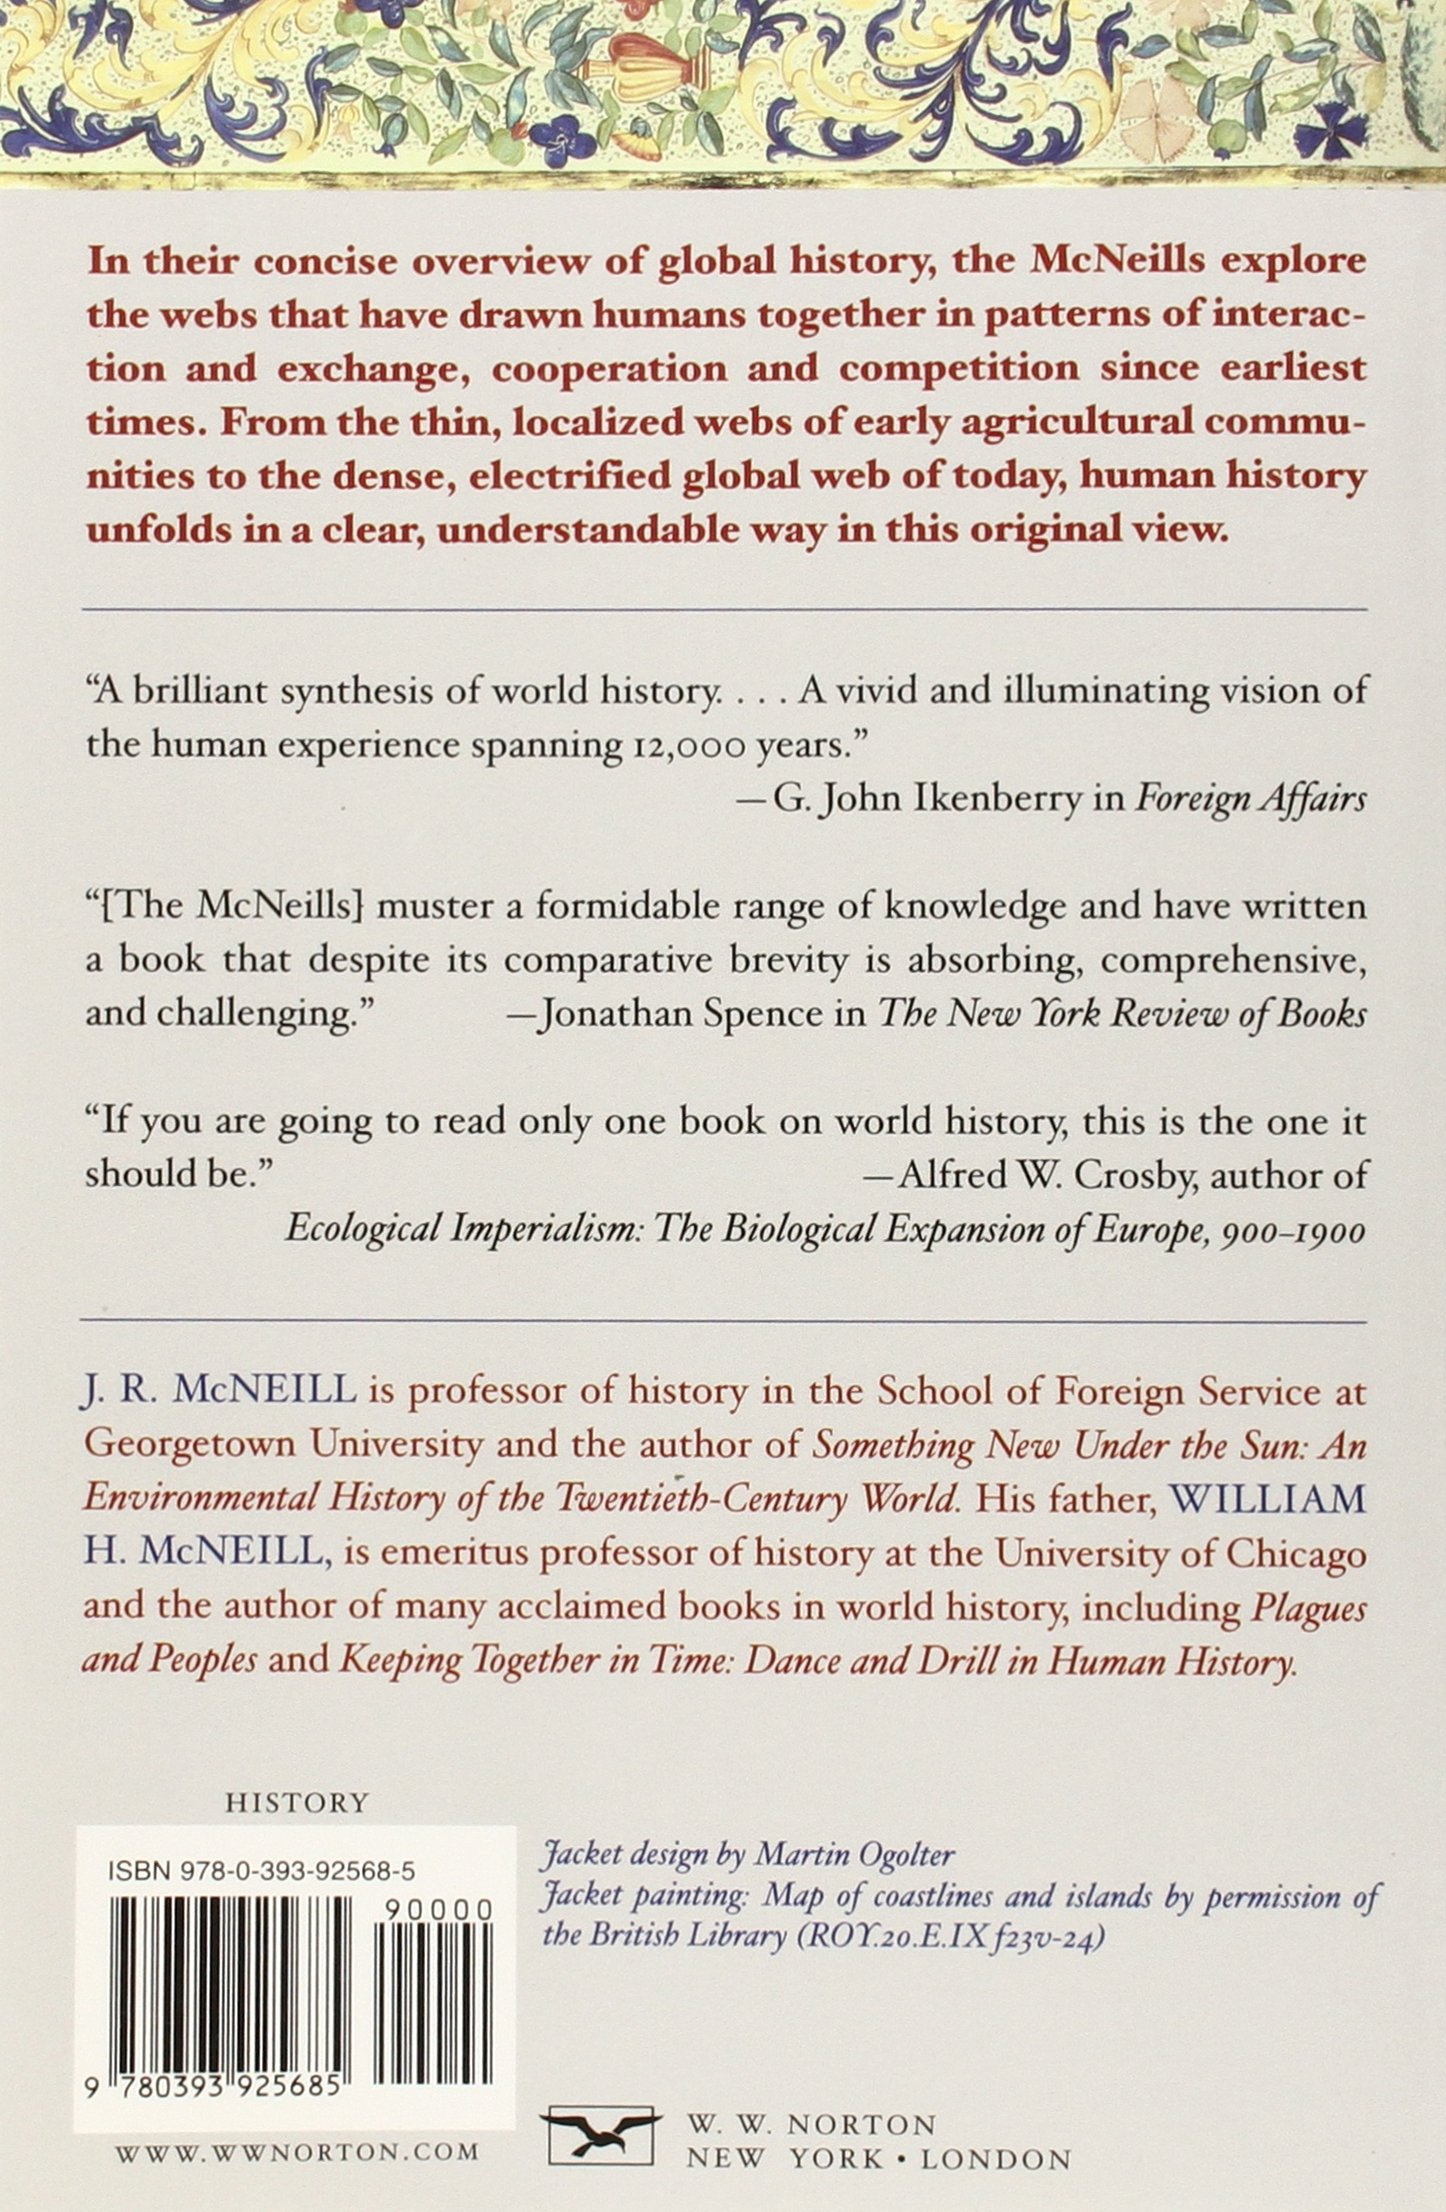 The Human Web: A Bird's-Eye View of World History: Amazon.de: J.R. McNeil,  William H. McNeill: Fremdsprachige Bücher